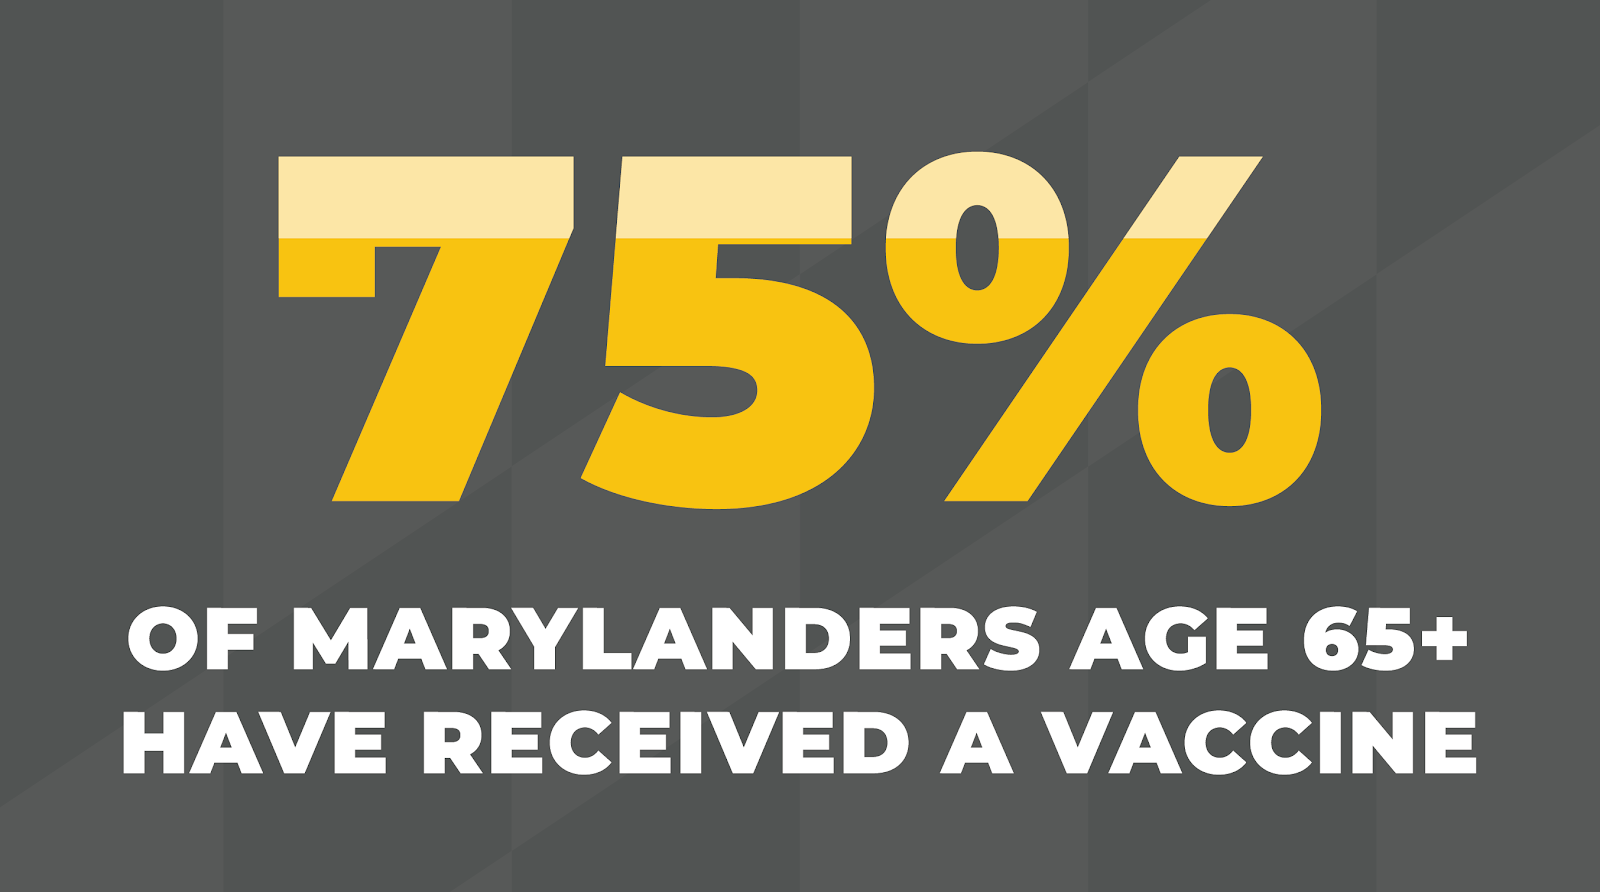 75 percent of MDers age 65+ received vax